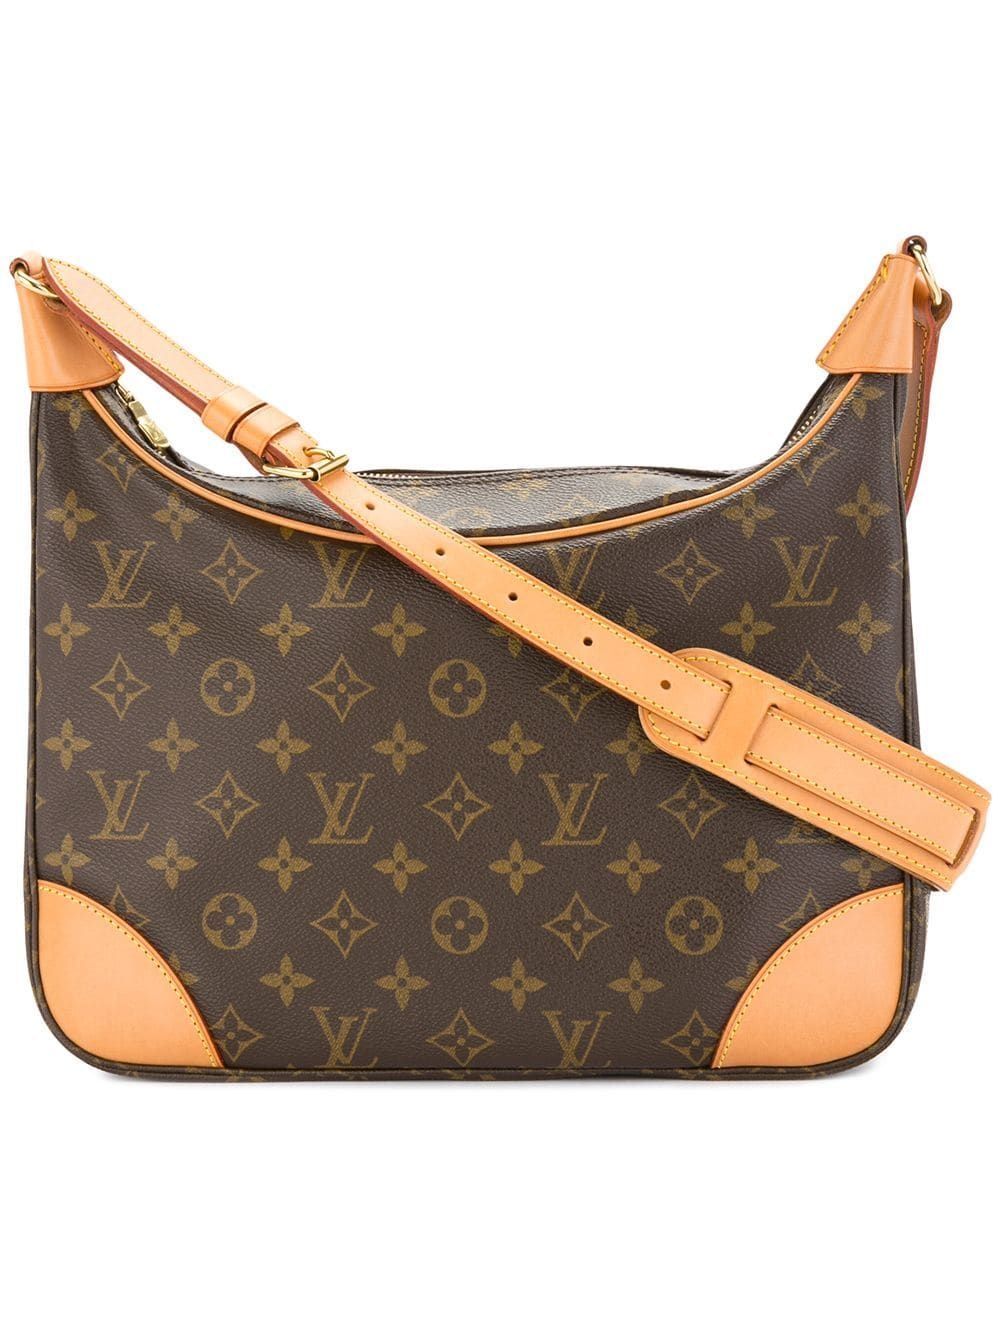 43bf66178eb35 Louis Vuitton Pre-Owned Boulogne 30 Shoulder Bag in 2019 | Products ...